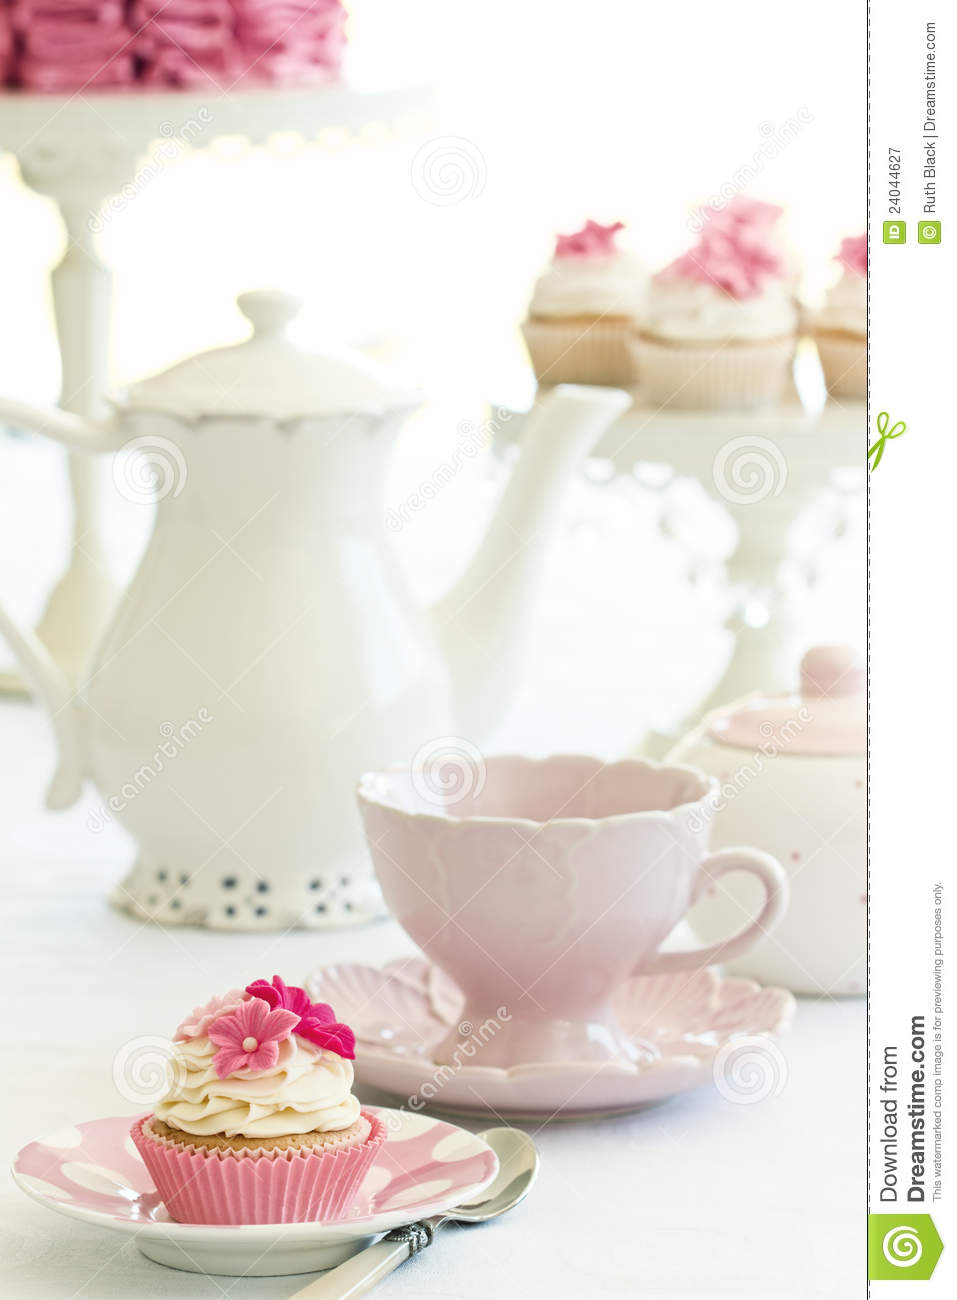 Afternoon Tea Stock Image  Image Of Shabby, Frosted, Summer